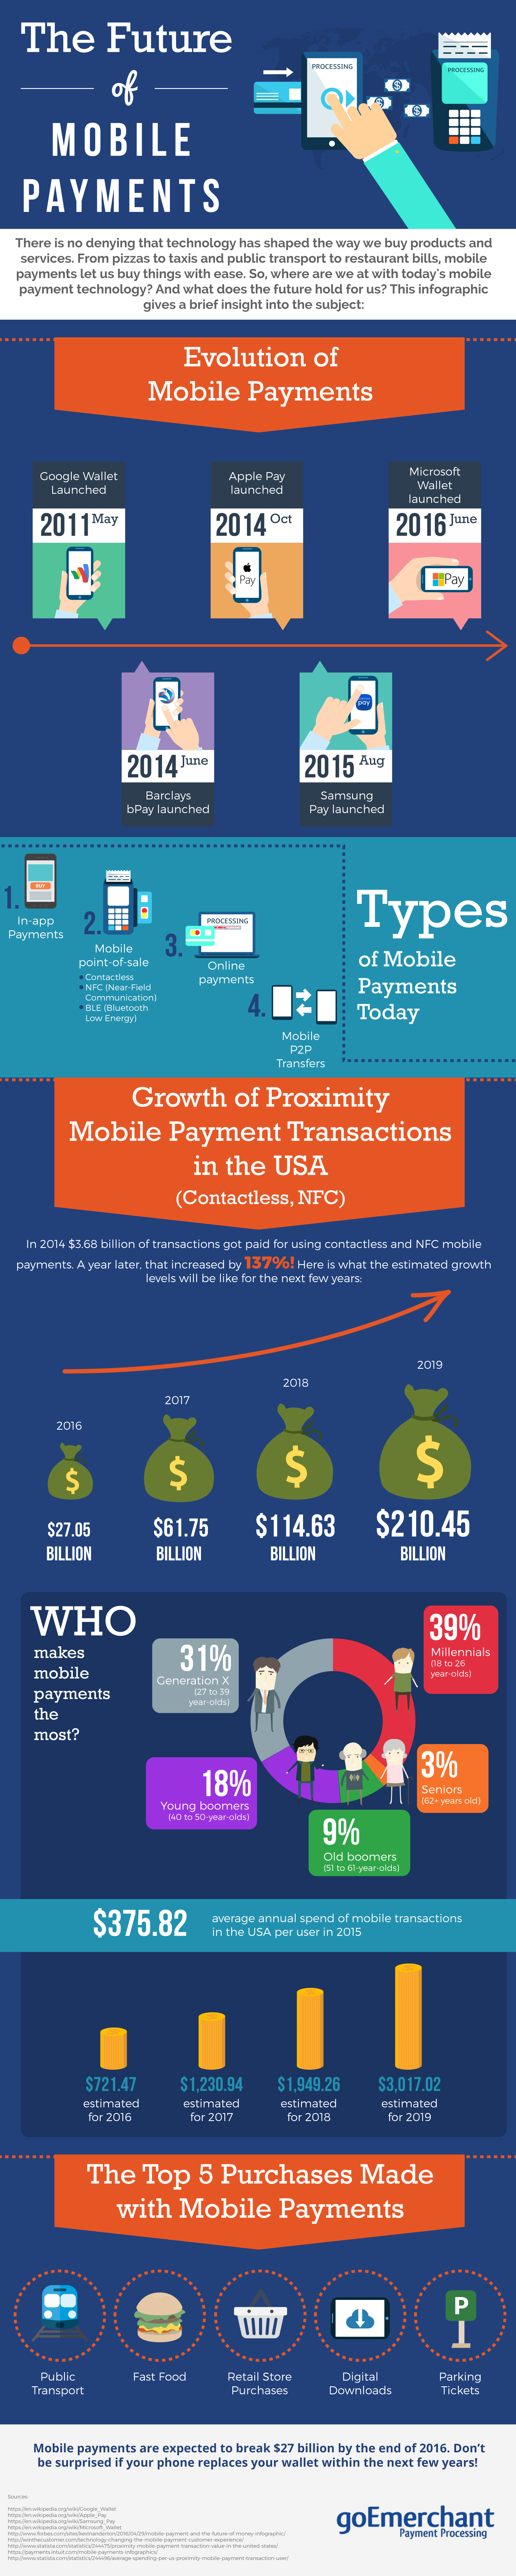 The Future of Mobile Payments - goEmerchant infographic